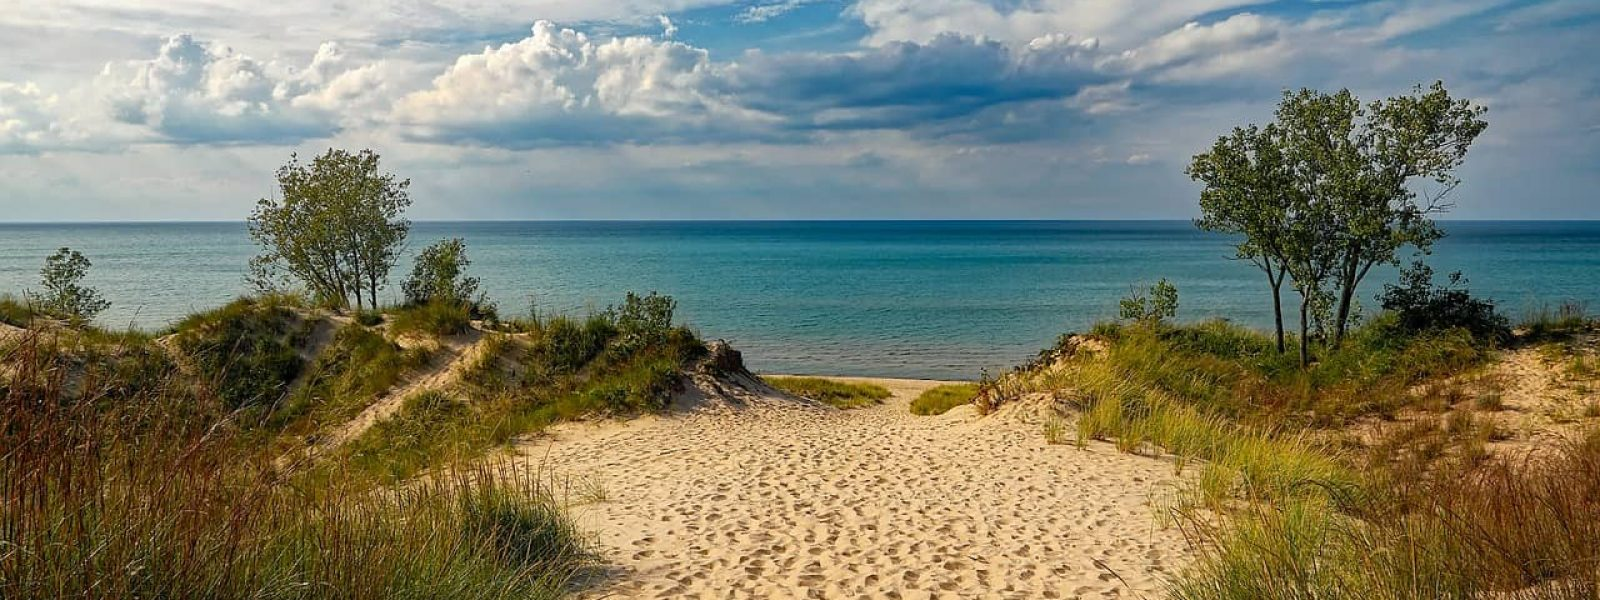 indiana-dunes-state-park-1848559_1280